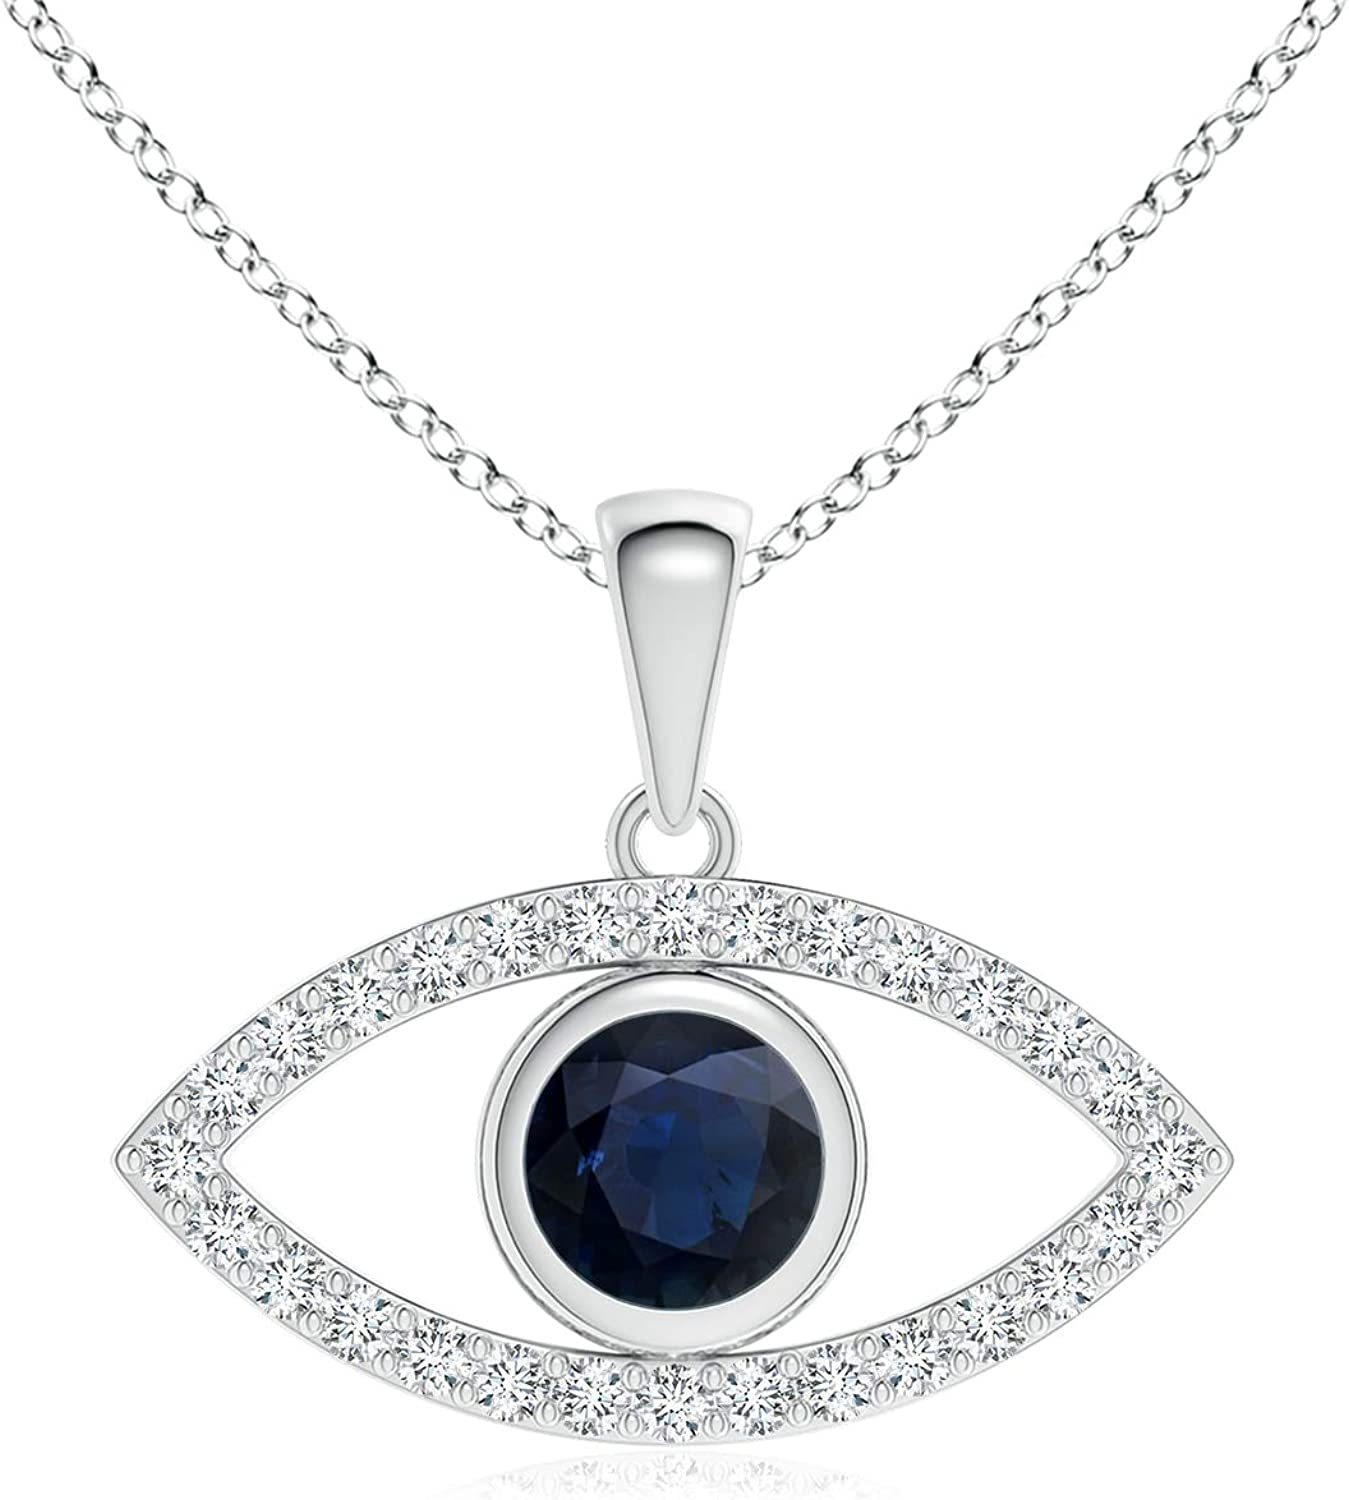 High order Blue Sapphire Evil Eye Pendant Diamond Accents with 4.5mm Inexpensive